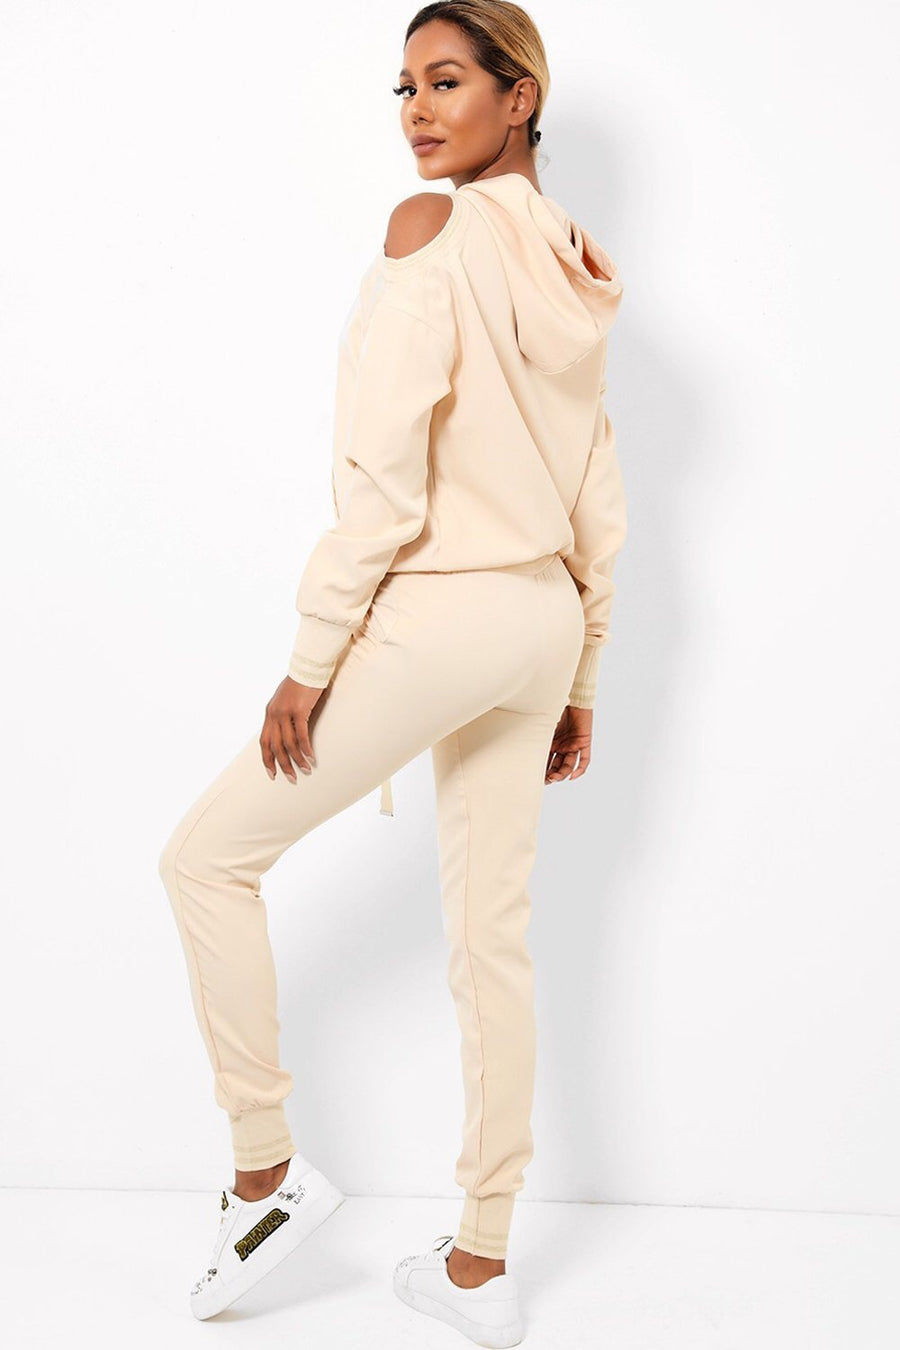 'Anne-Marie' cold shoulder cream tracksuit - Bikini Genie